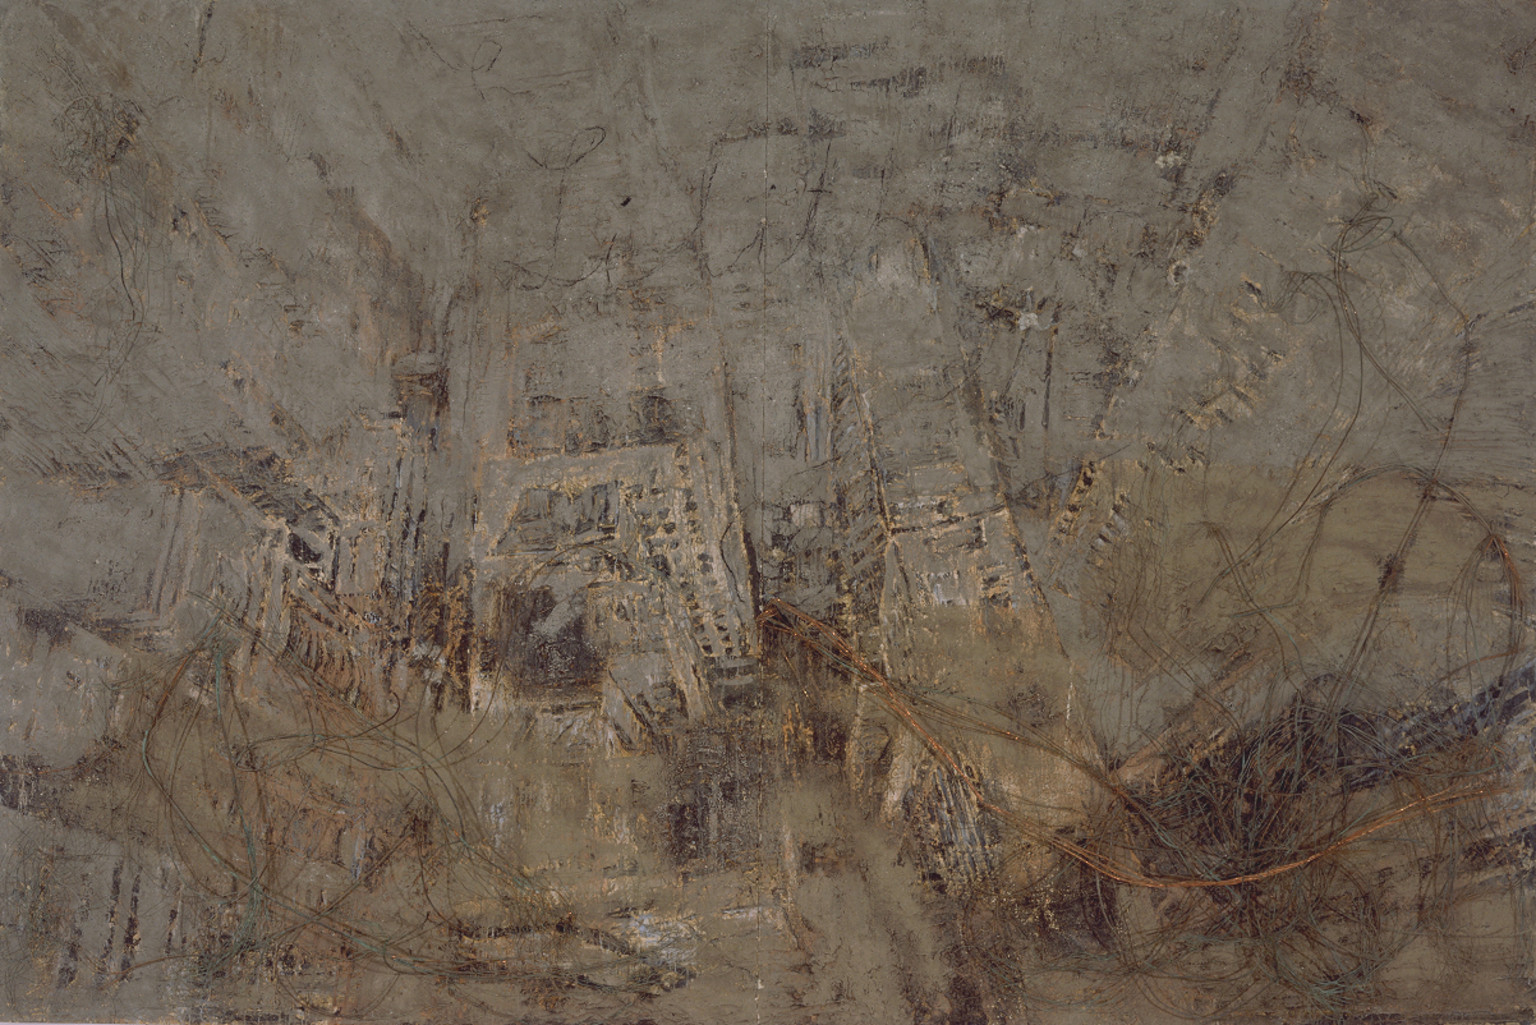 Anselm Kiefer's quote #6